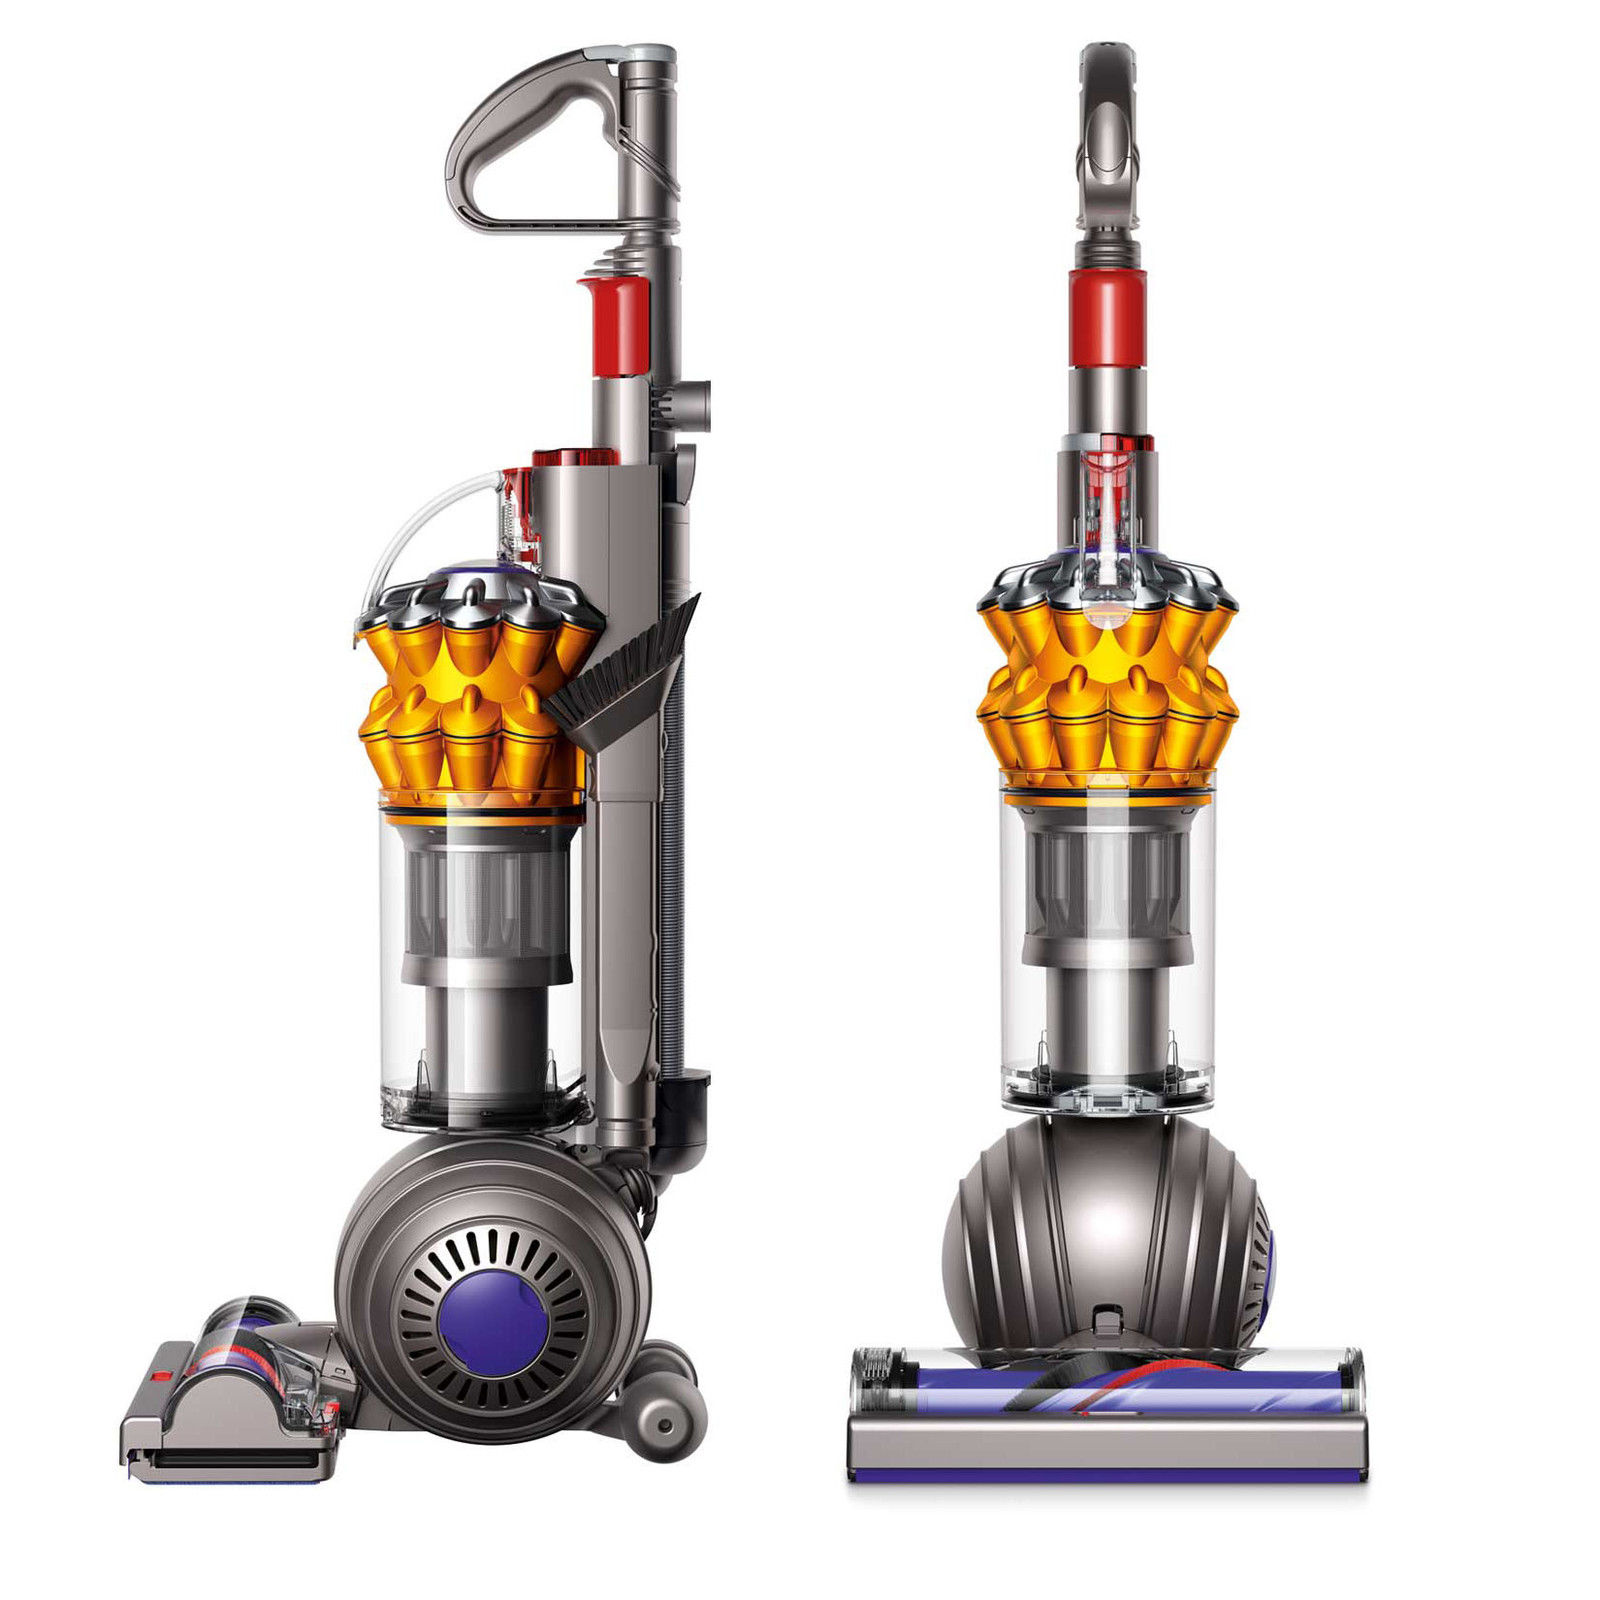 Details about Dyson Small Ball Multi Floor Upright Vacuum | Yellow |  Refurbished